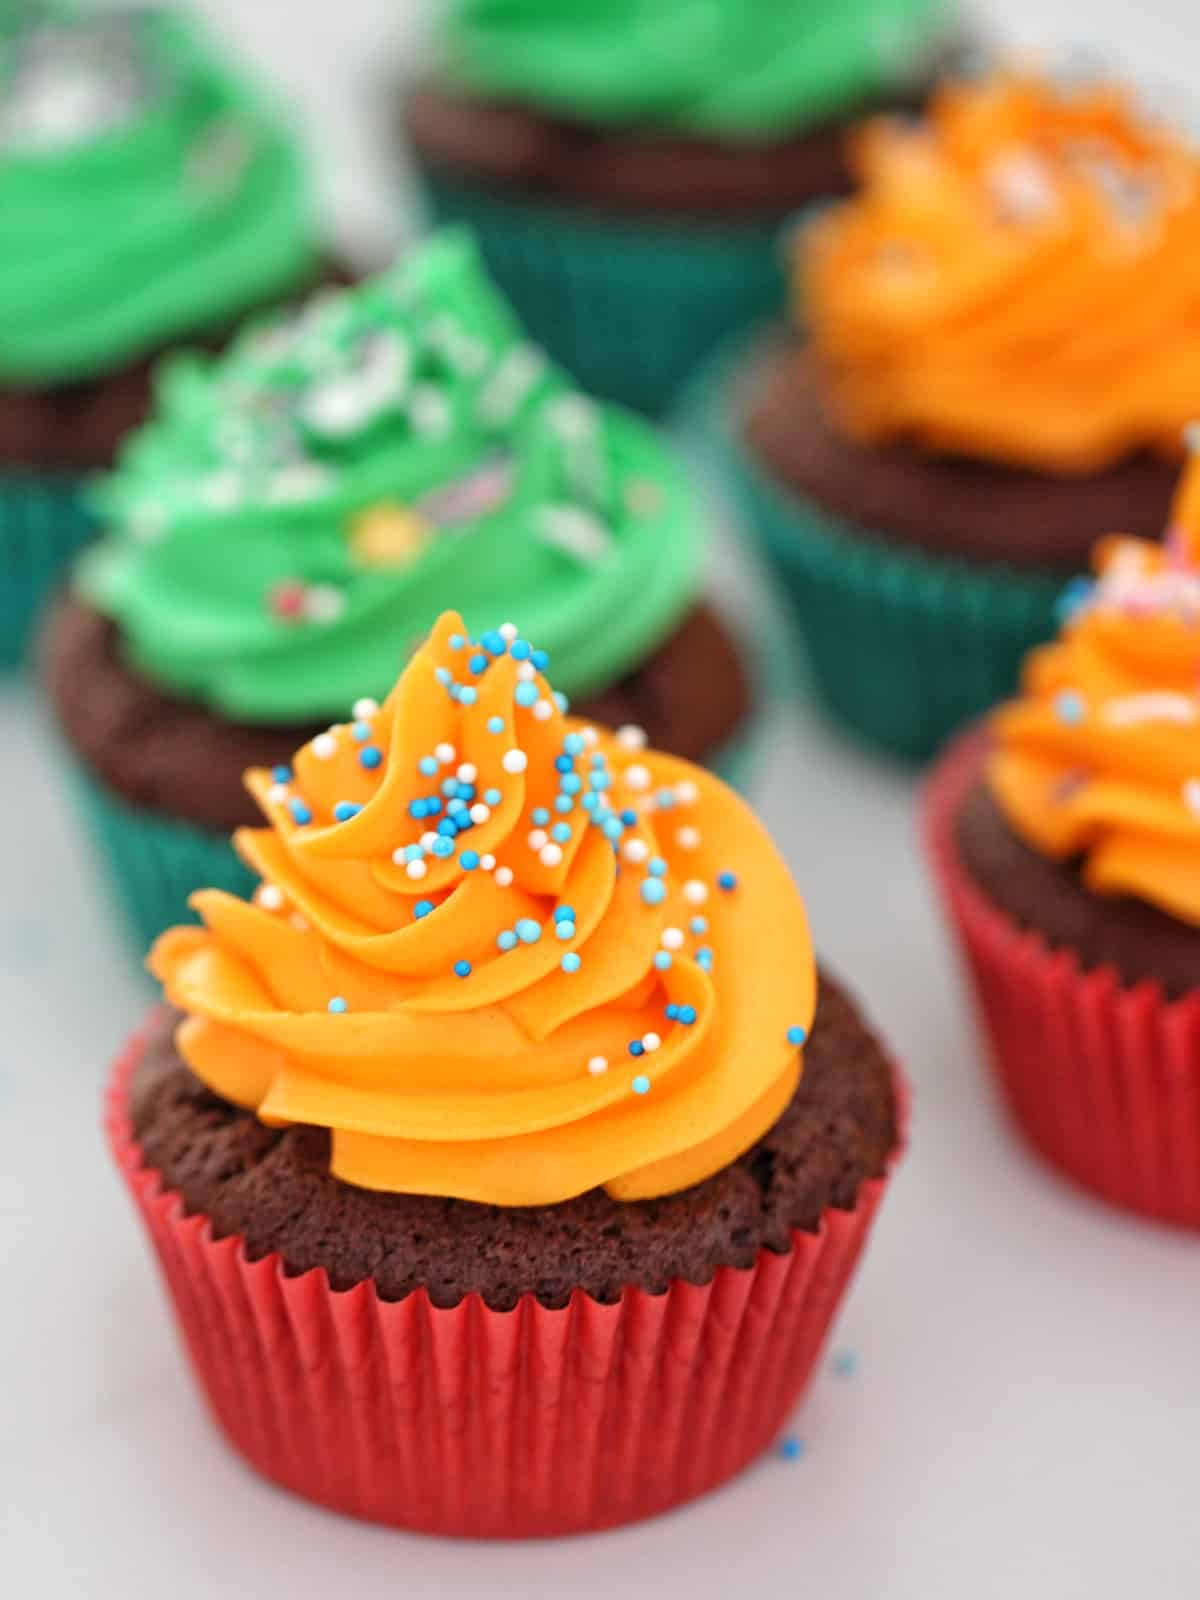 Thermomix Chocolate cupcakes with orange and green frosting